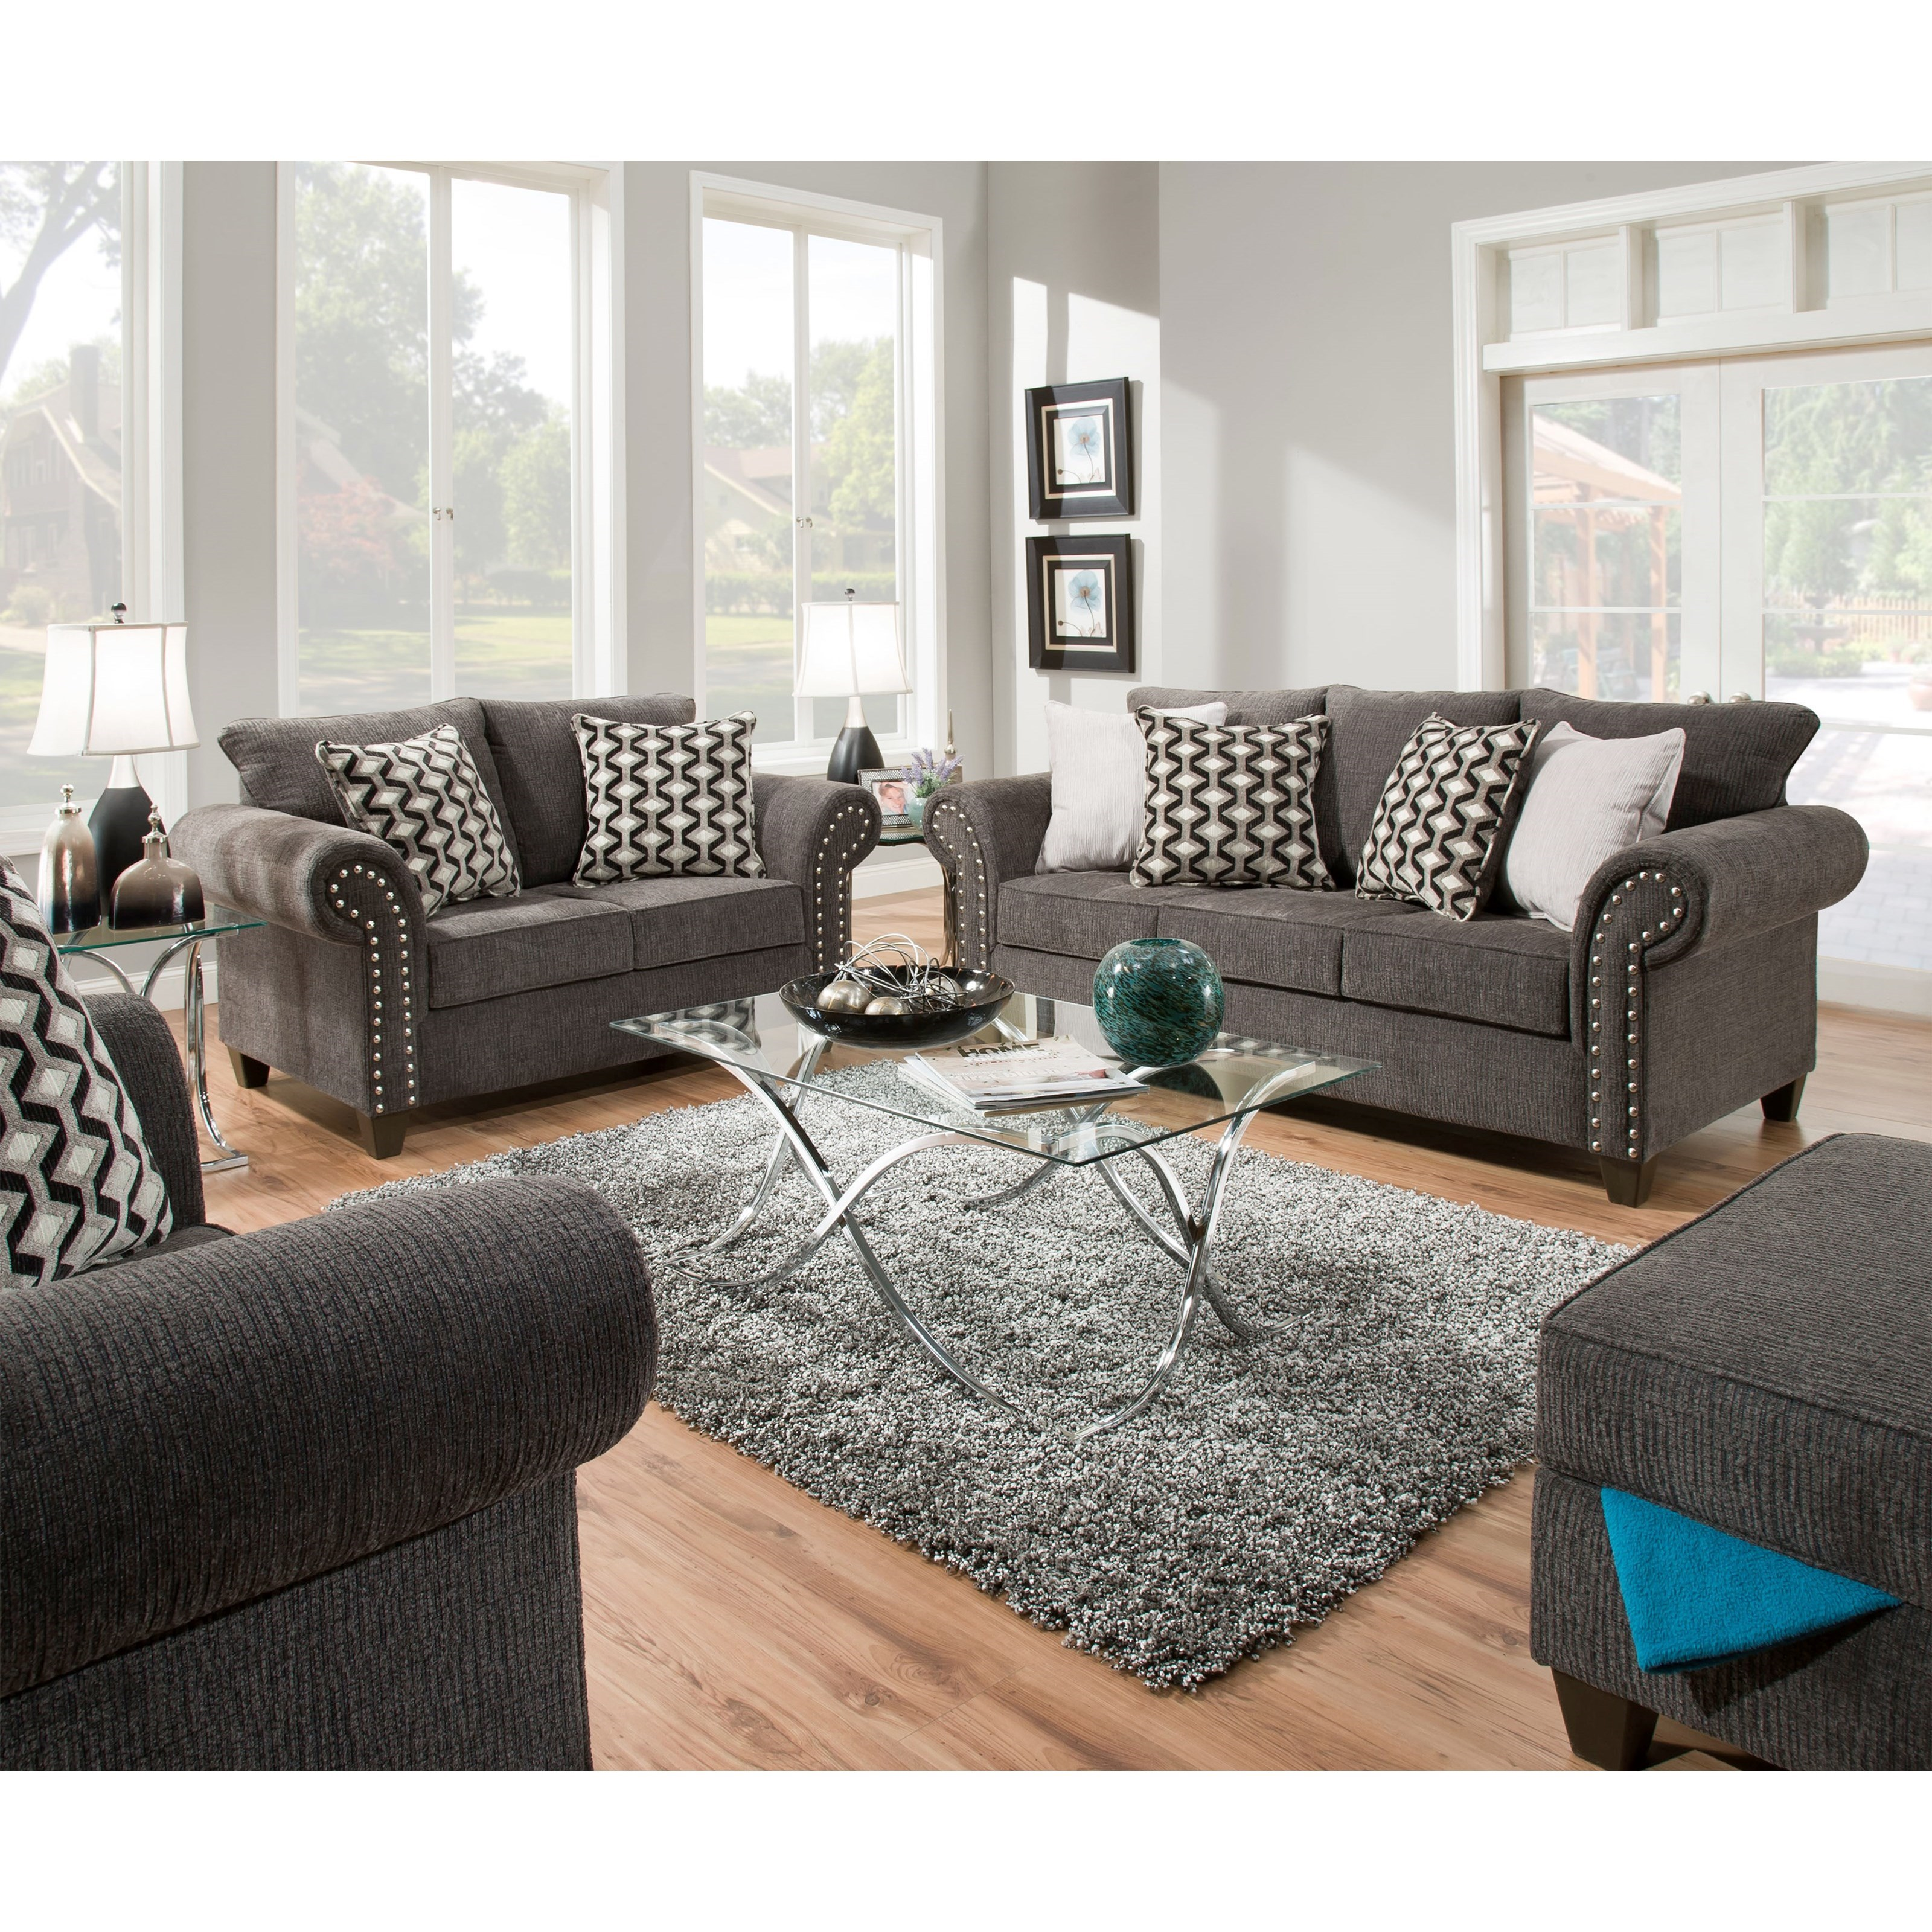 8036 Living Room Group by United Furniture Industries at Dream Home Interiors